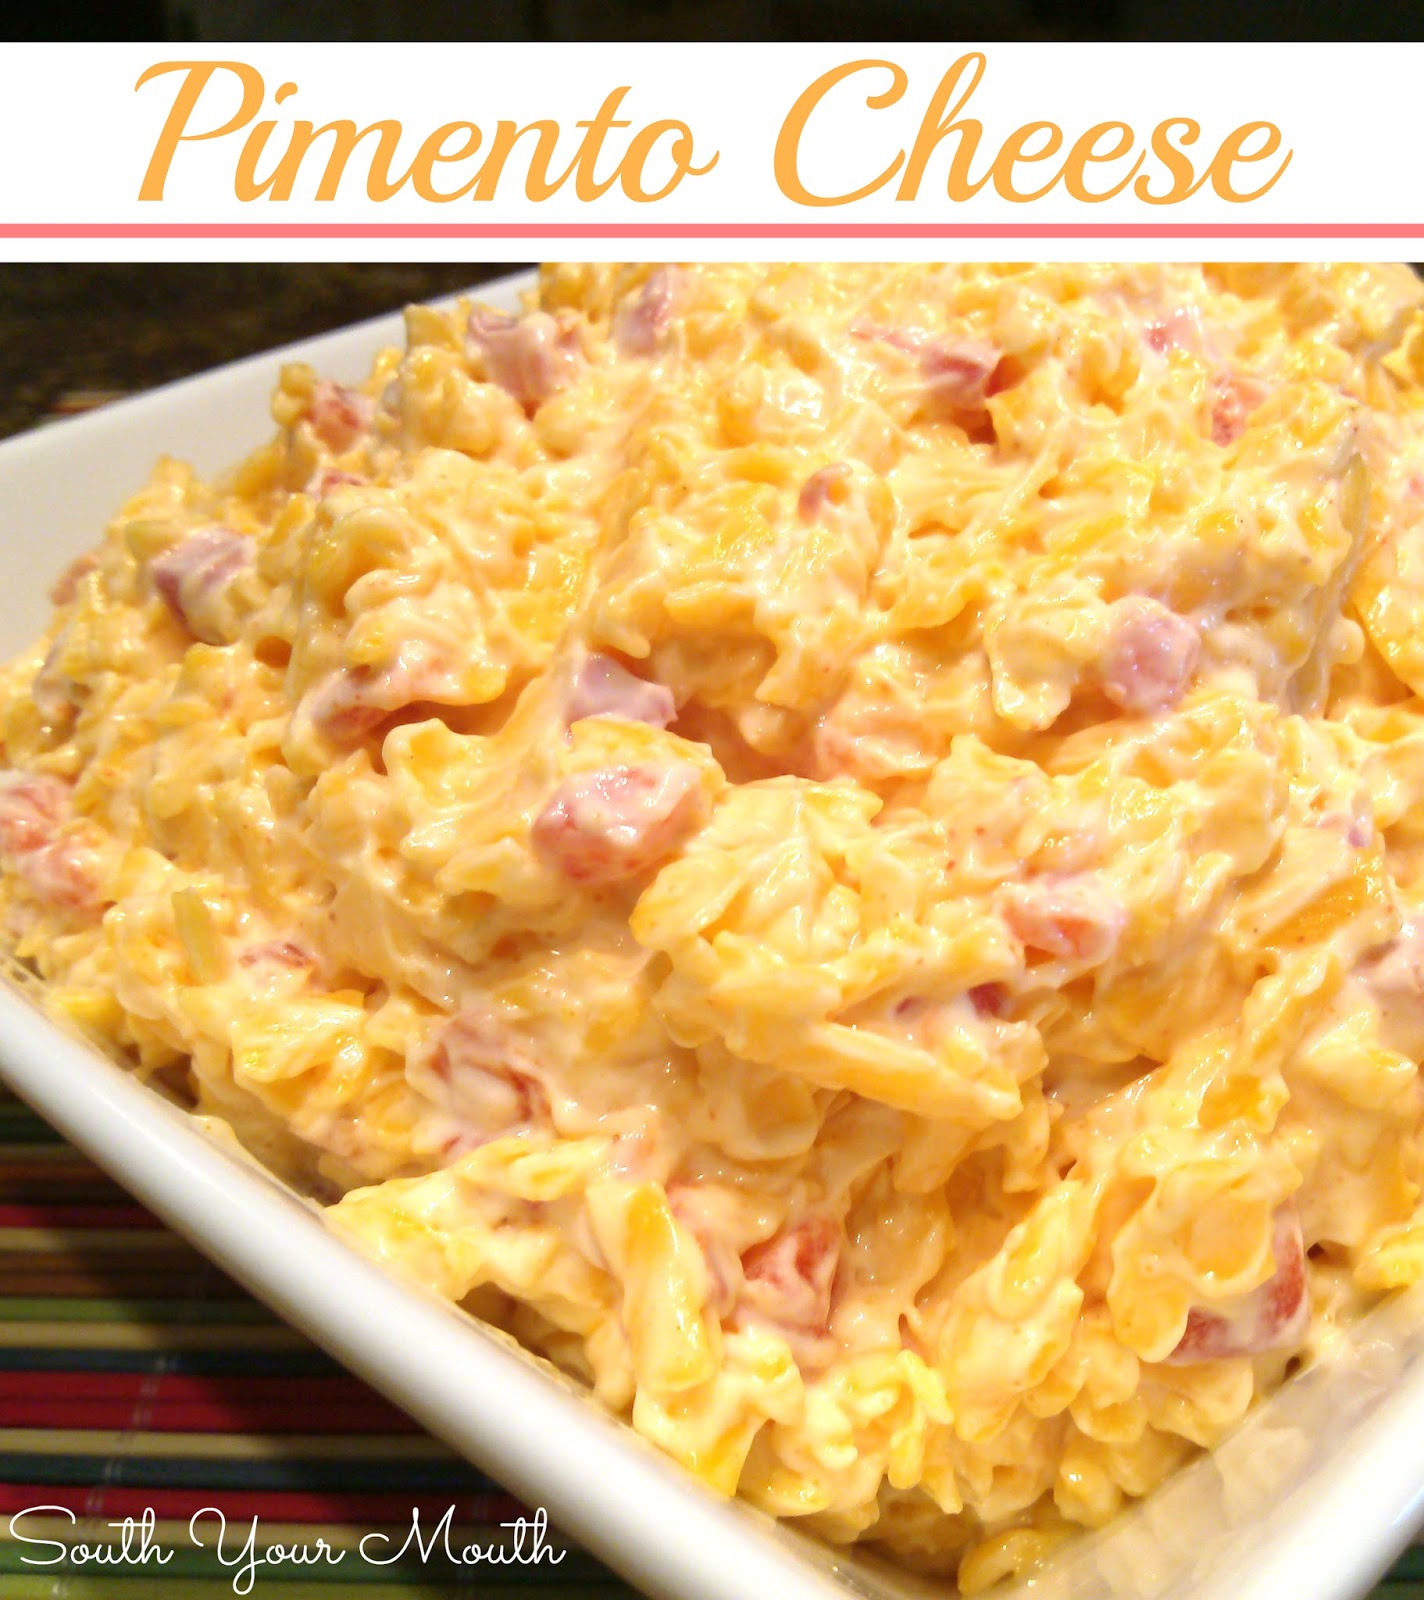 gratin party pimento cheese spread warm pimento cheese and chips ...